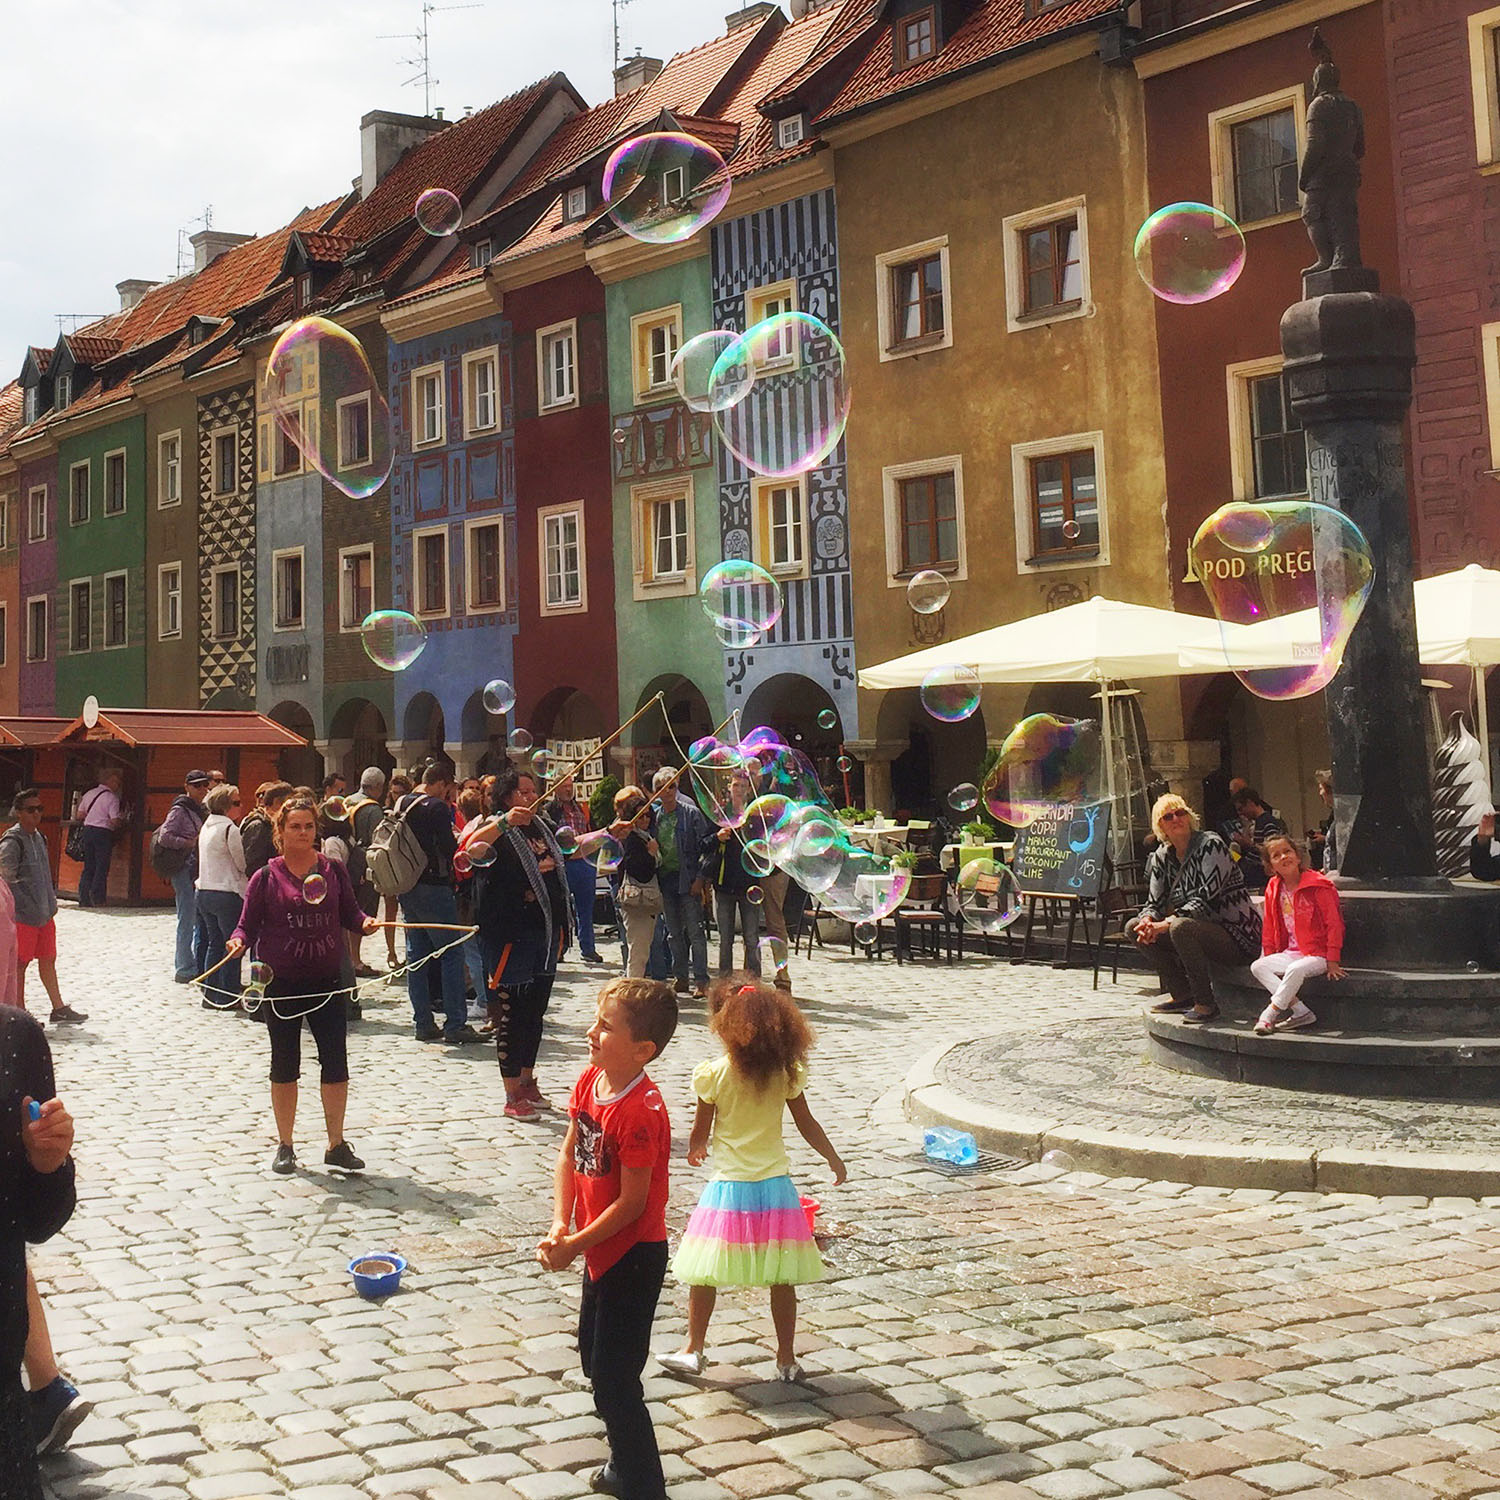 Children playing with bubbles in front of colorful buildings